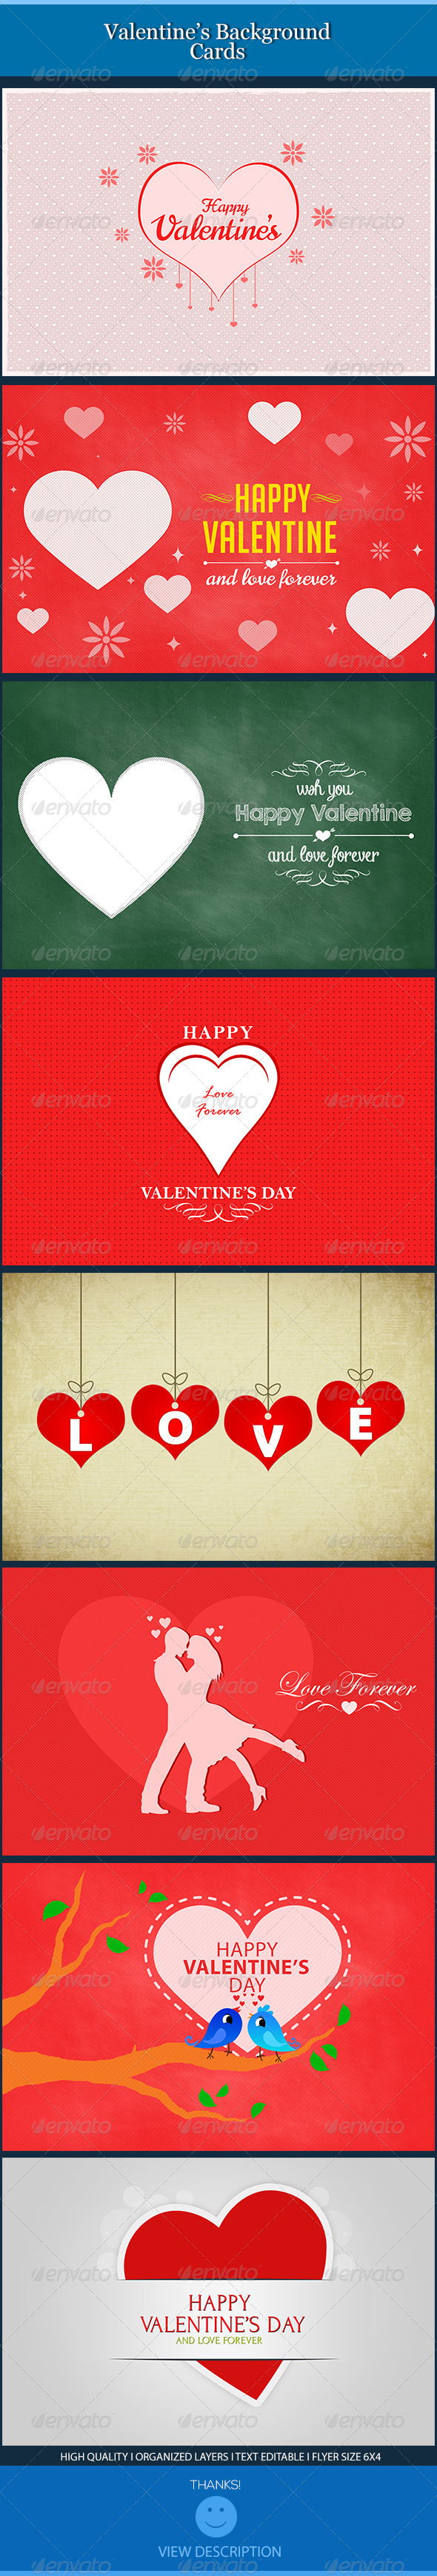 Valentine Backgrounds Cards - Backgrounds Graphics